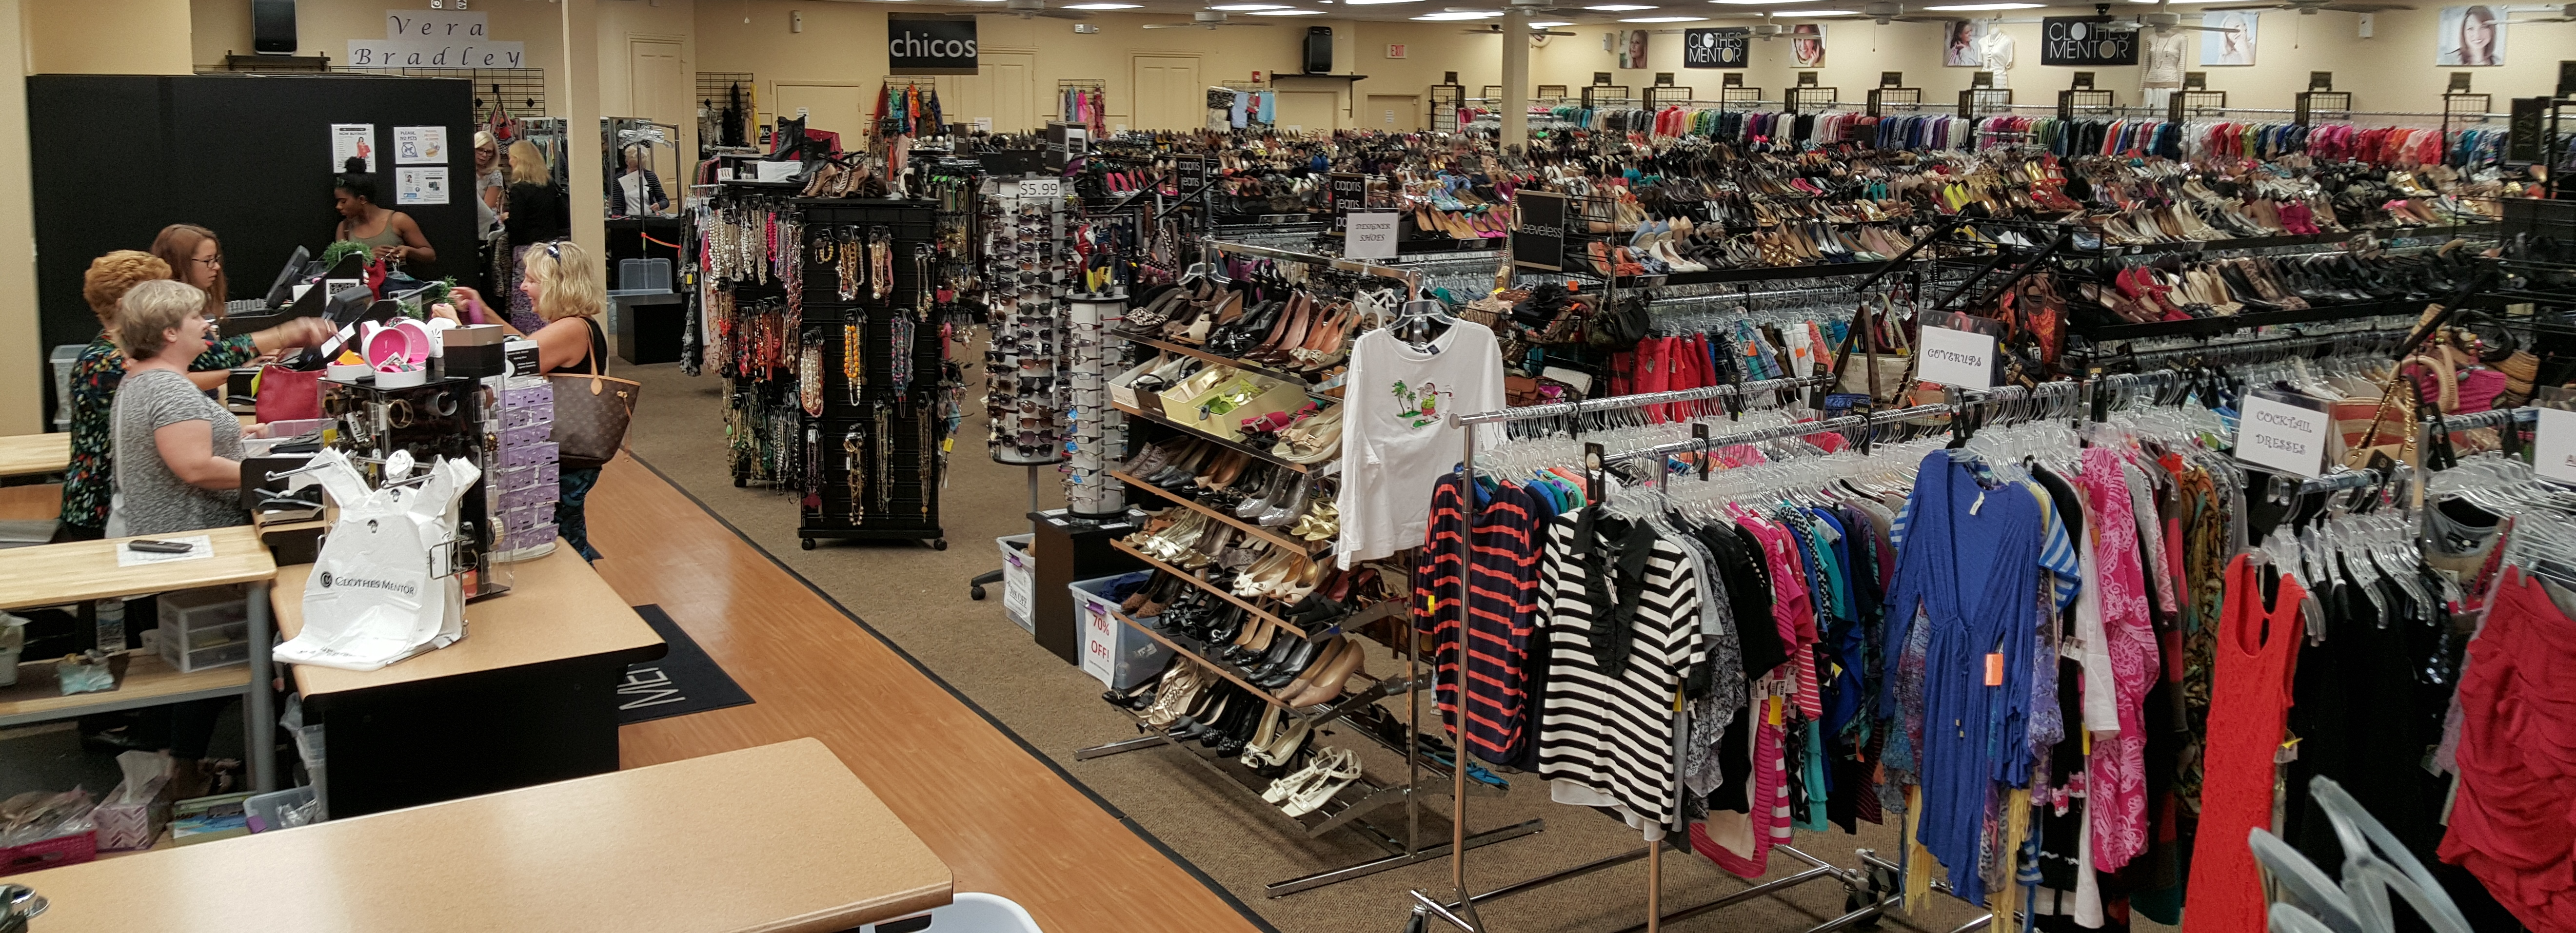 a beginners guide to shopping resale at clothes mentor naples south florida reporter. Black Bedroom Furniture Sets. Home Design Ideas